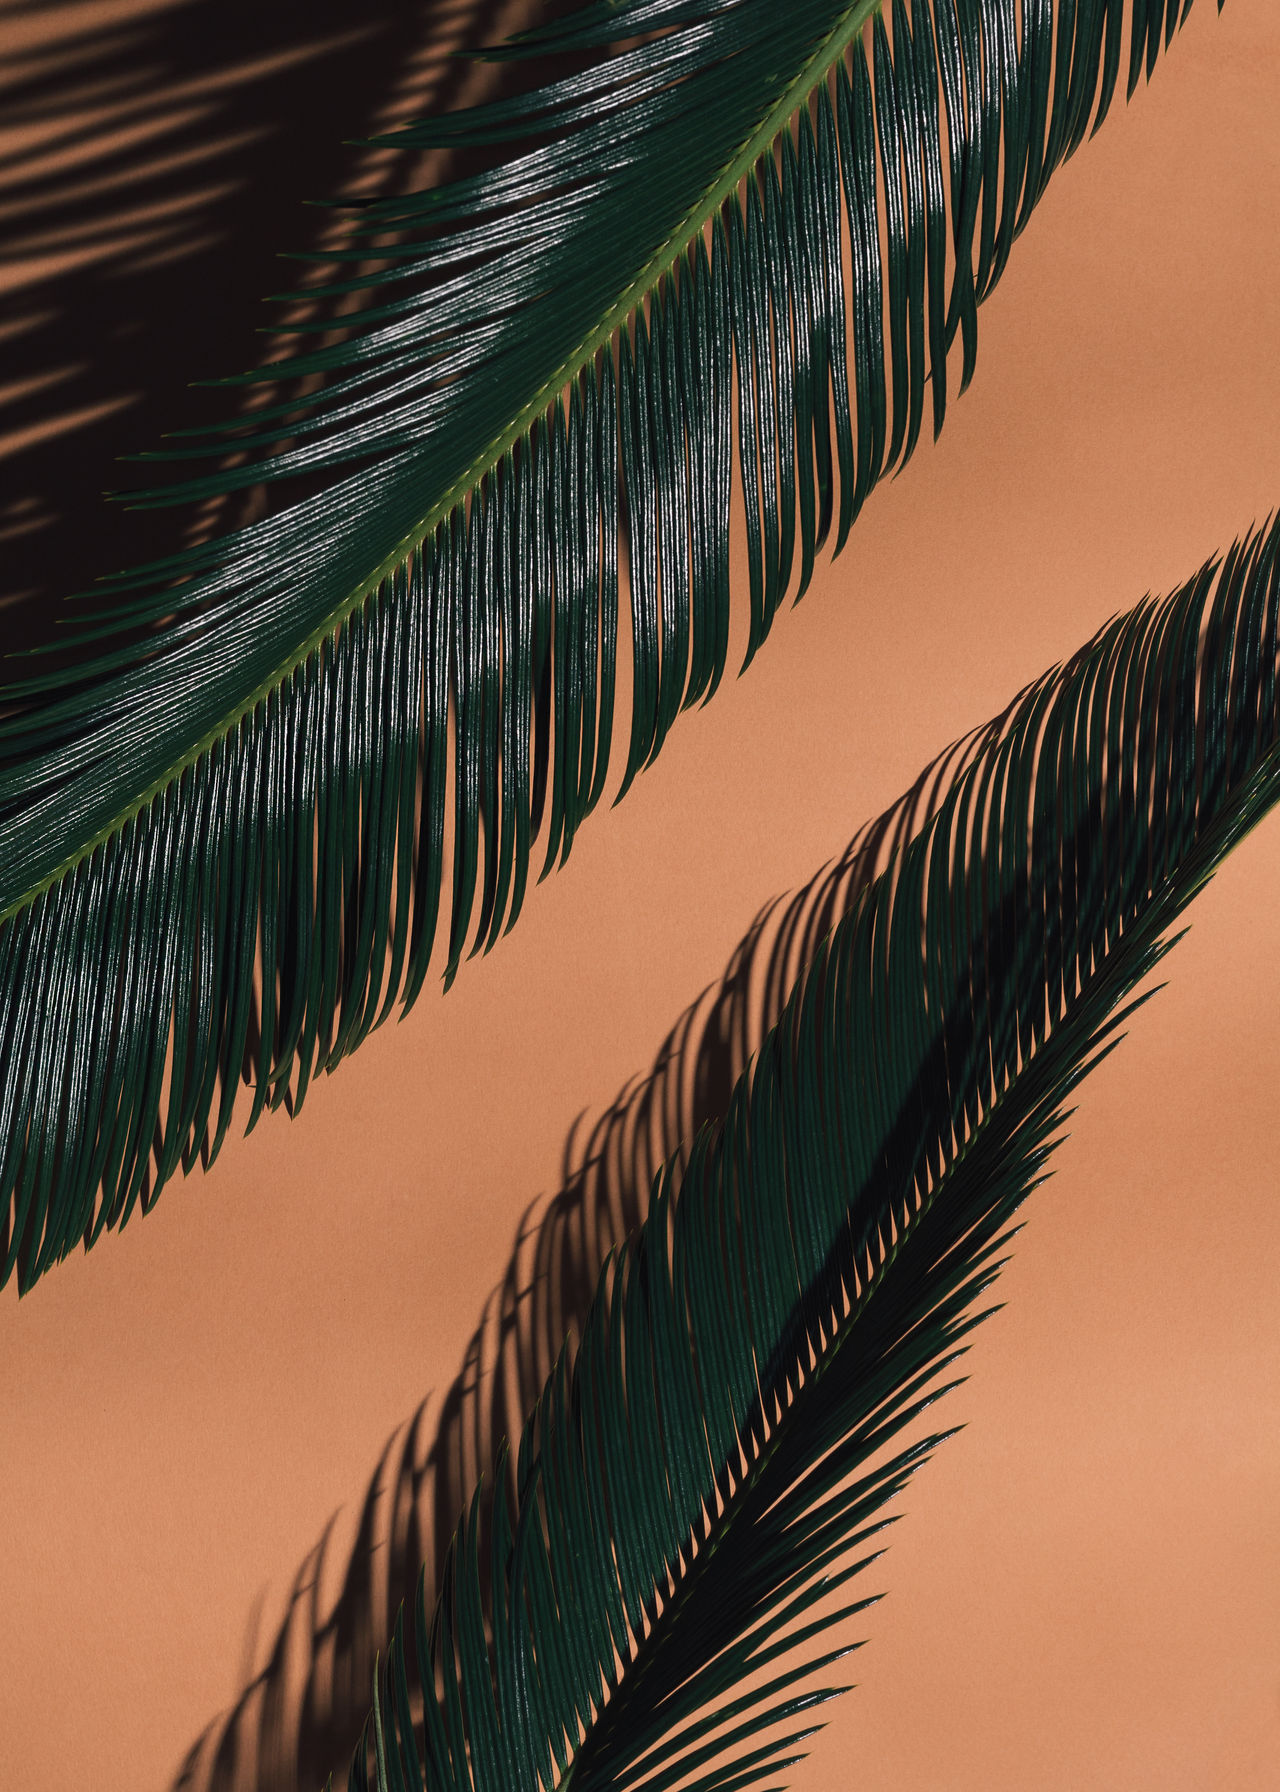 Close-up of leaves against sky during sunset